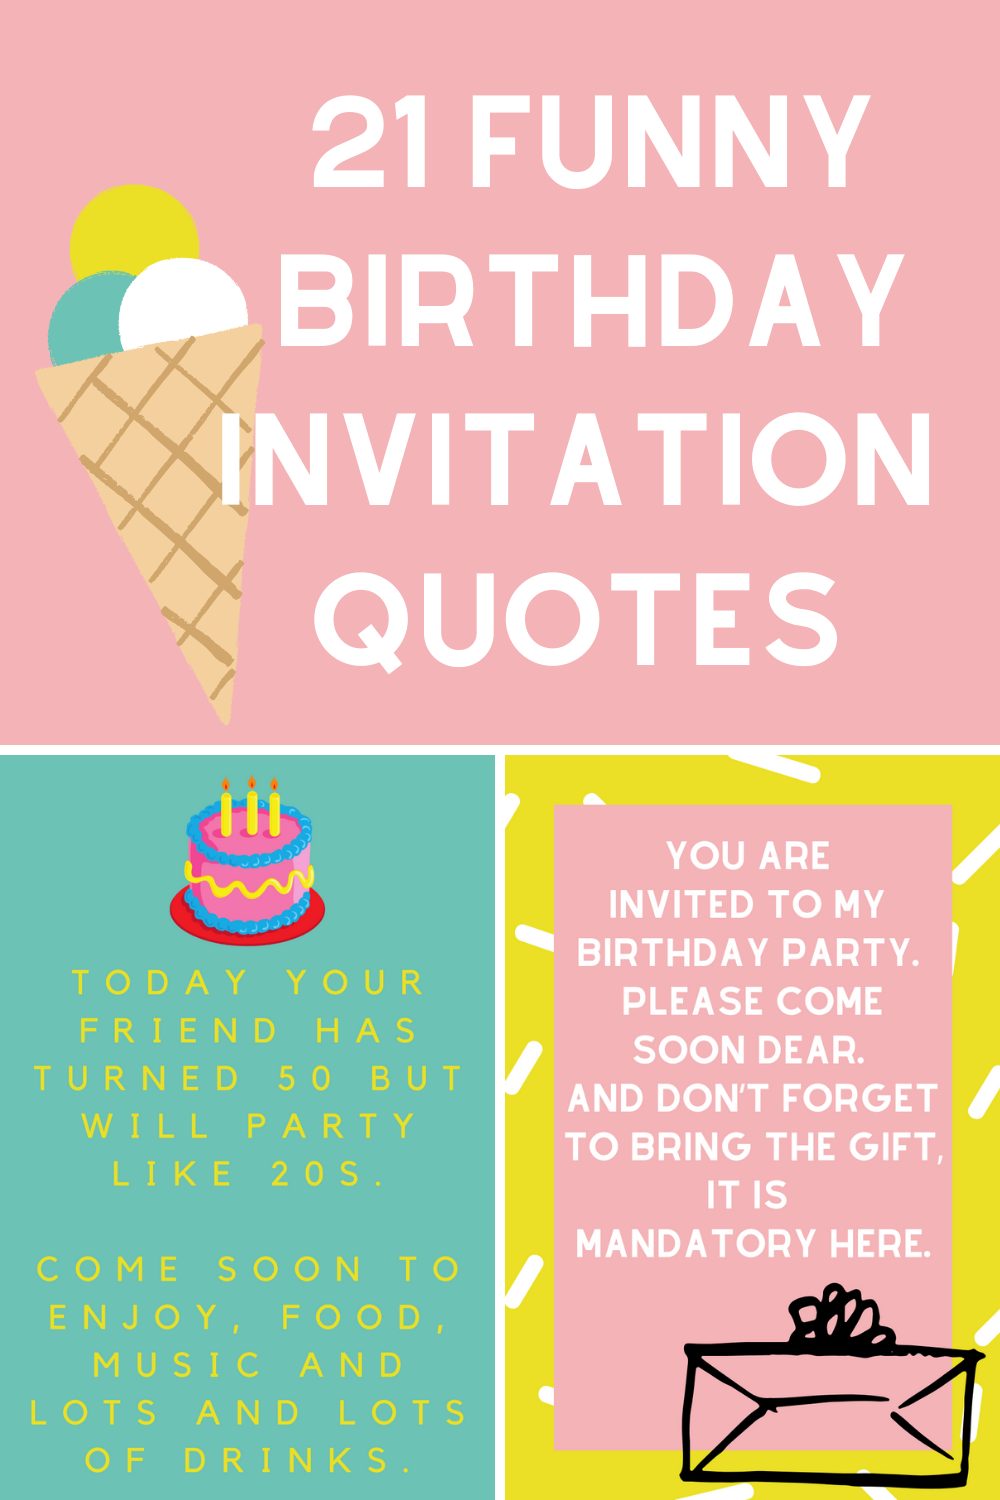 21 Funny Birthday Invitation Quotes Darling Quote